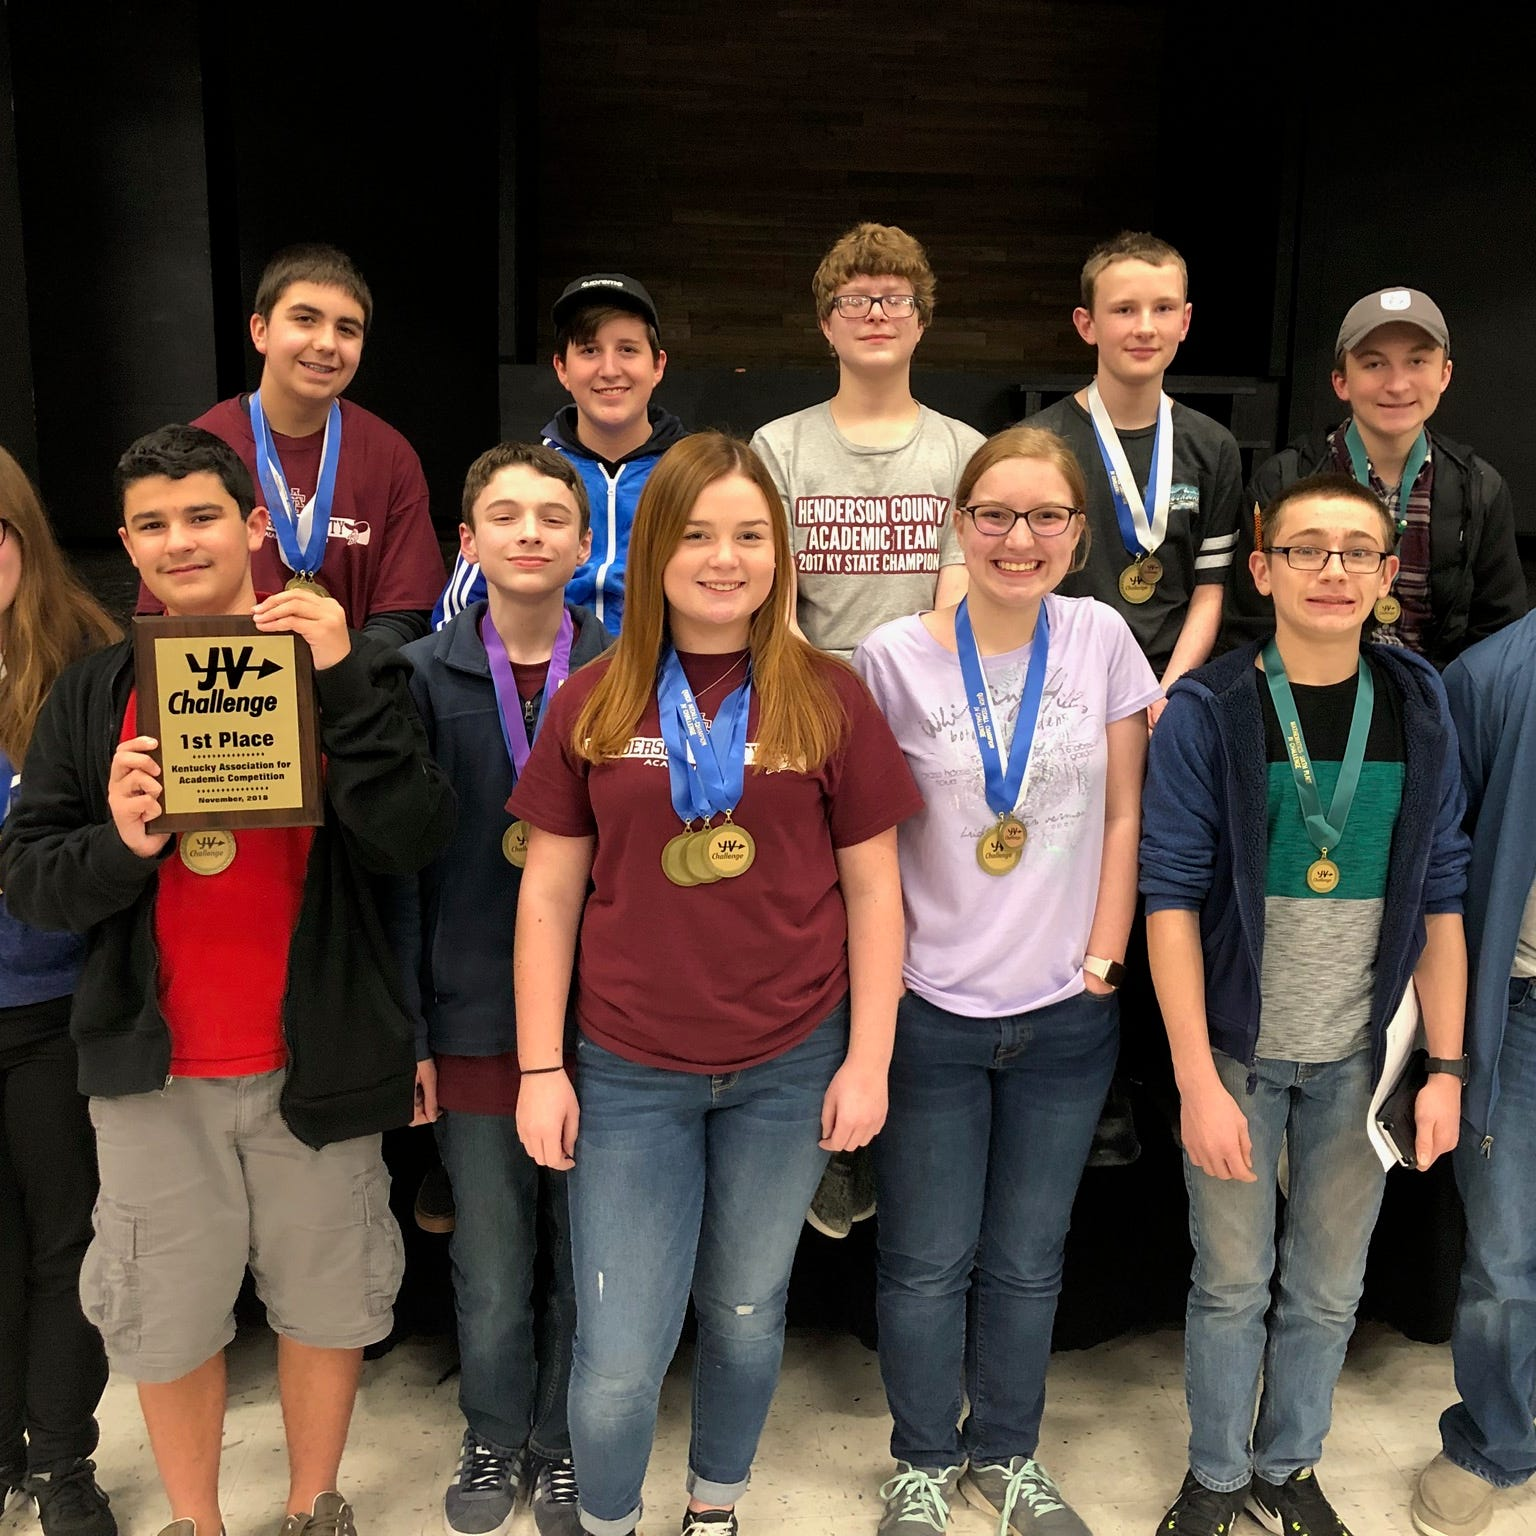 Henderson County wins JV Challenge academic tournament